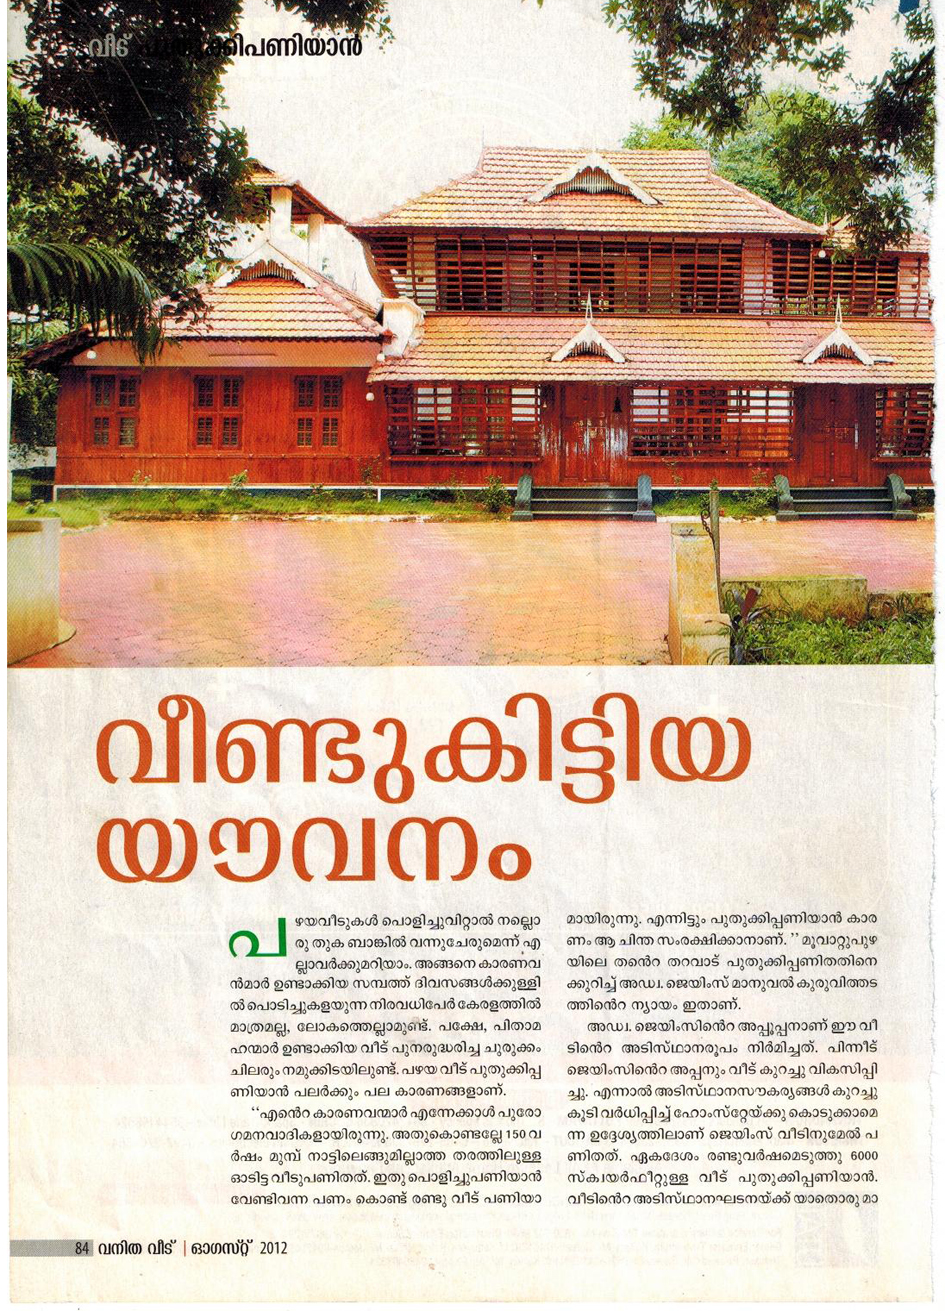 Kuruvithadom bungalow for Manorama veedu photos